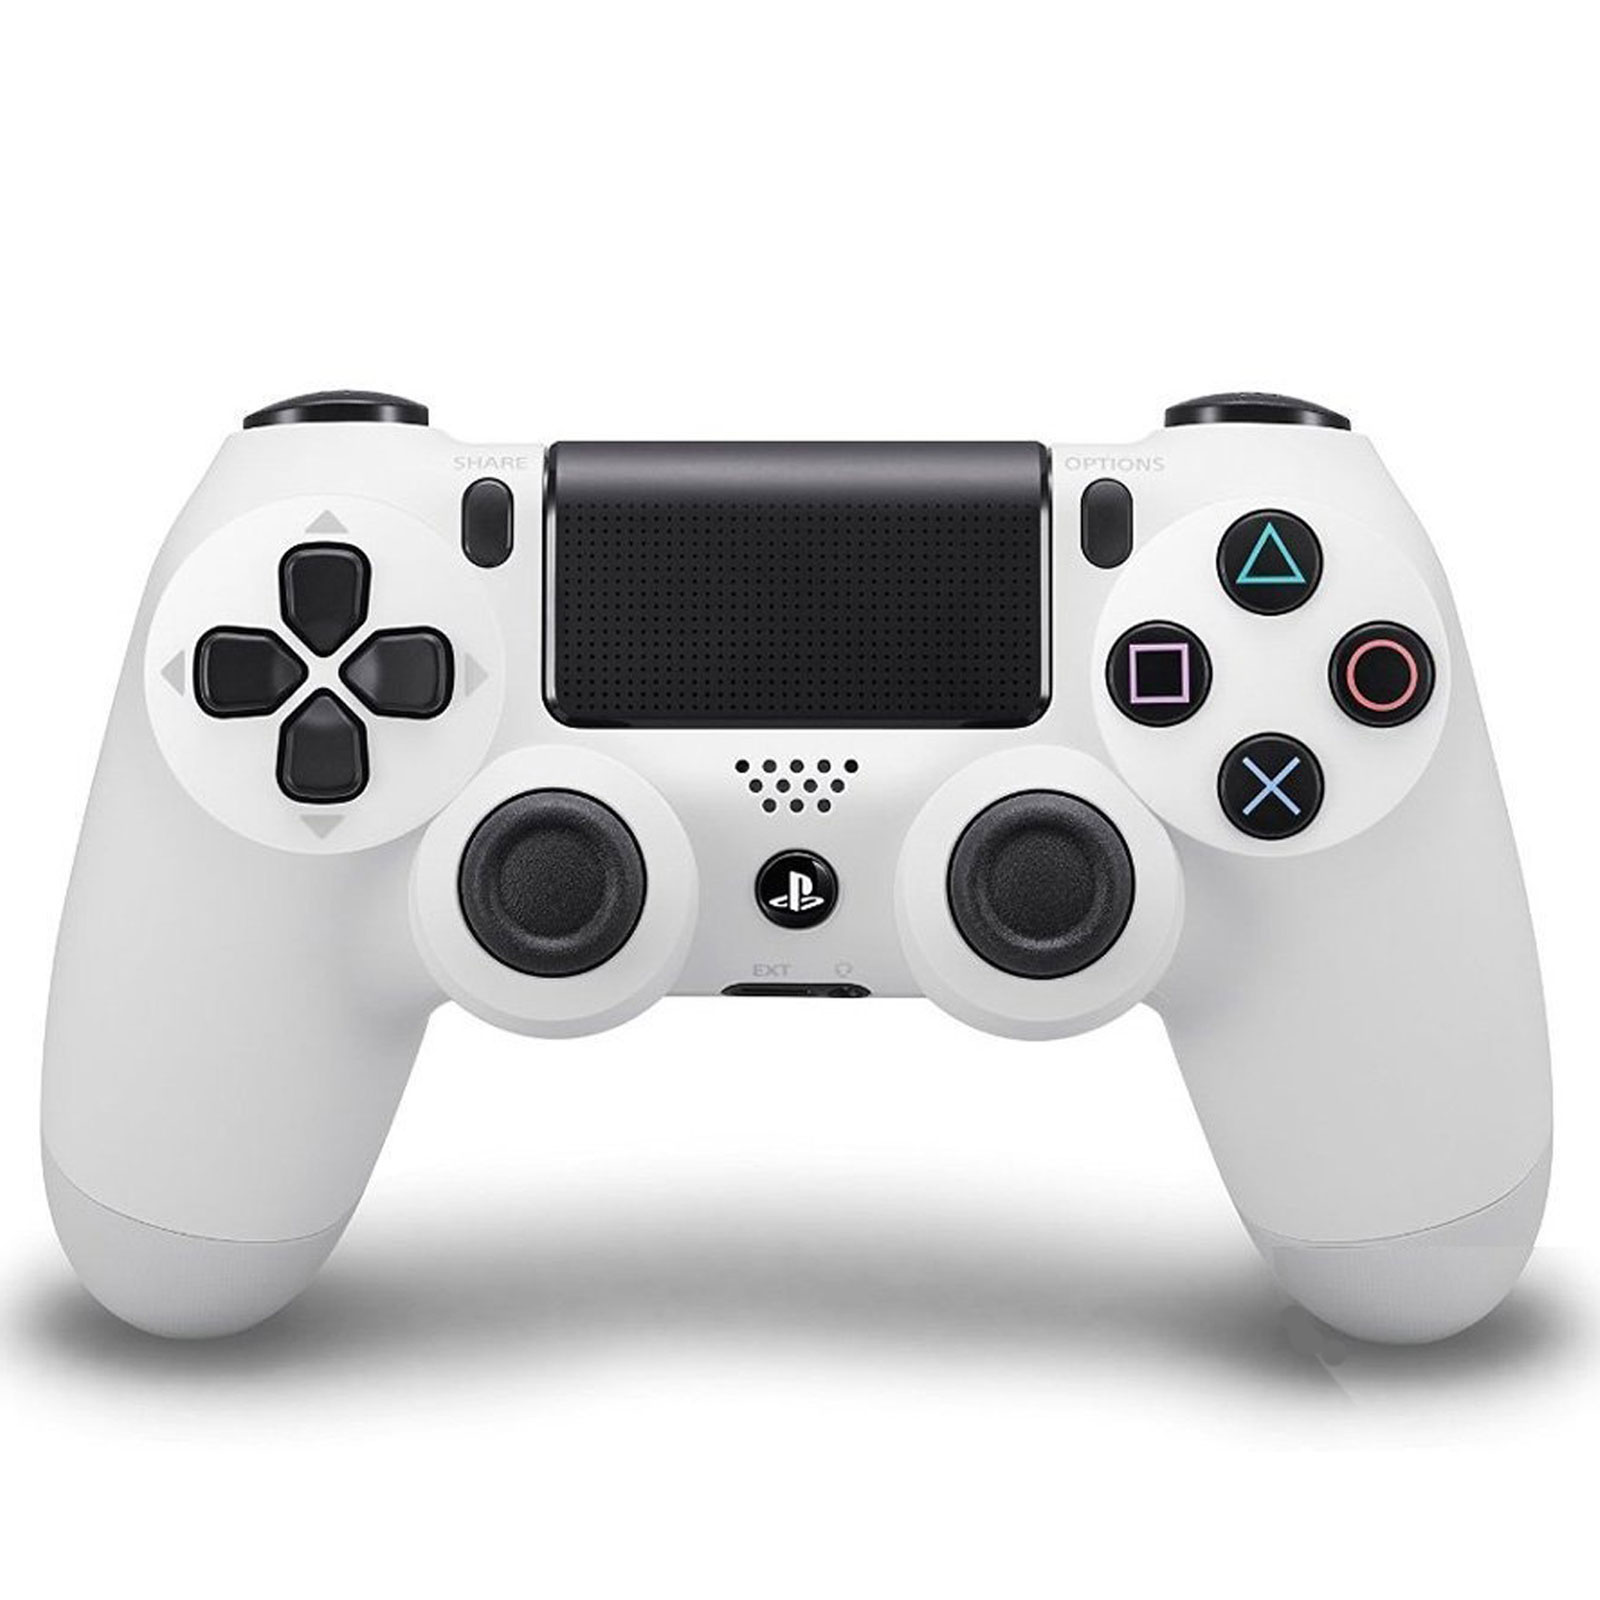 sony dualshock 4 blanche accessoires ps4 sony computer entertainment sur ldlc. Black Bedroom Furniture Sets. Home Design Ideas